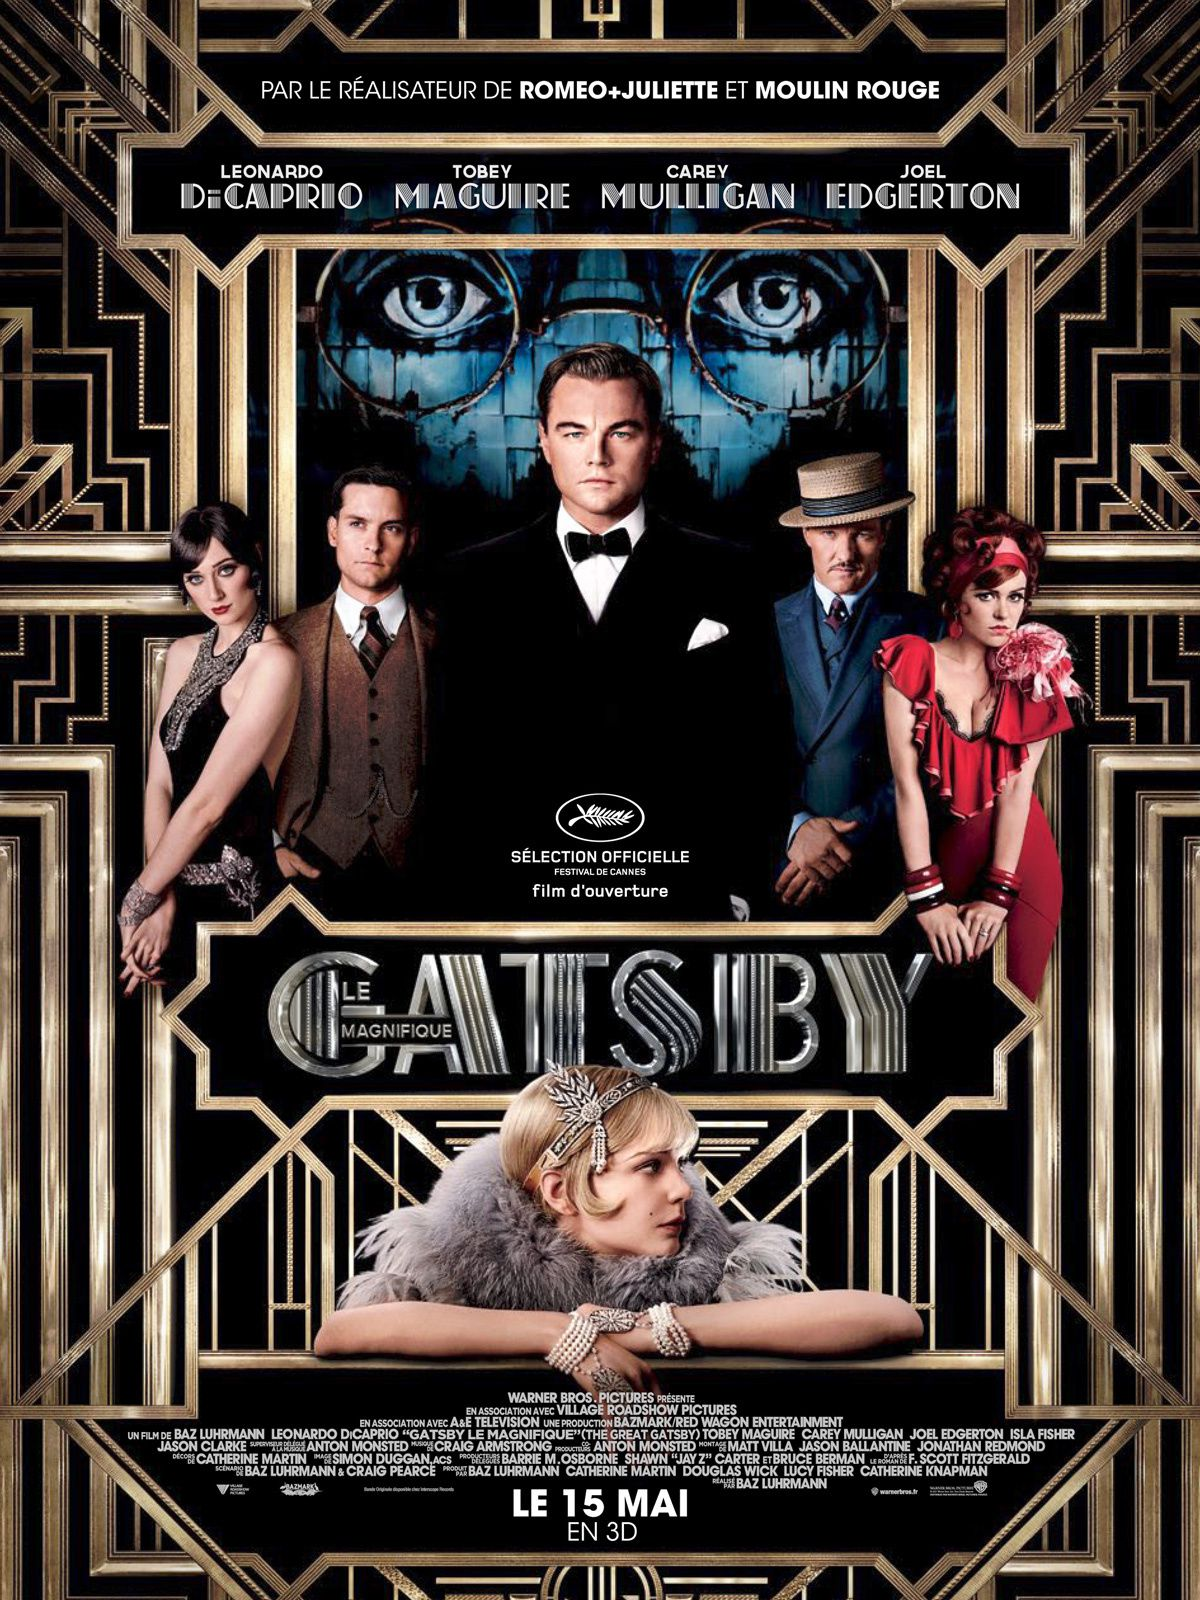 18h30 : The Great Gatsby (VO) de 2013 au Cinéma le Castillet